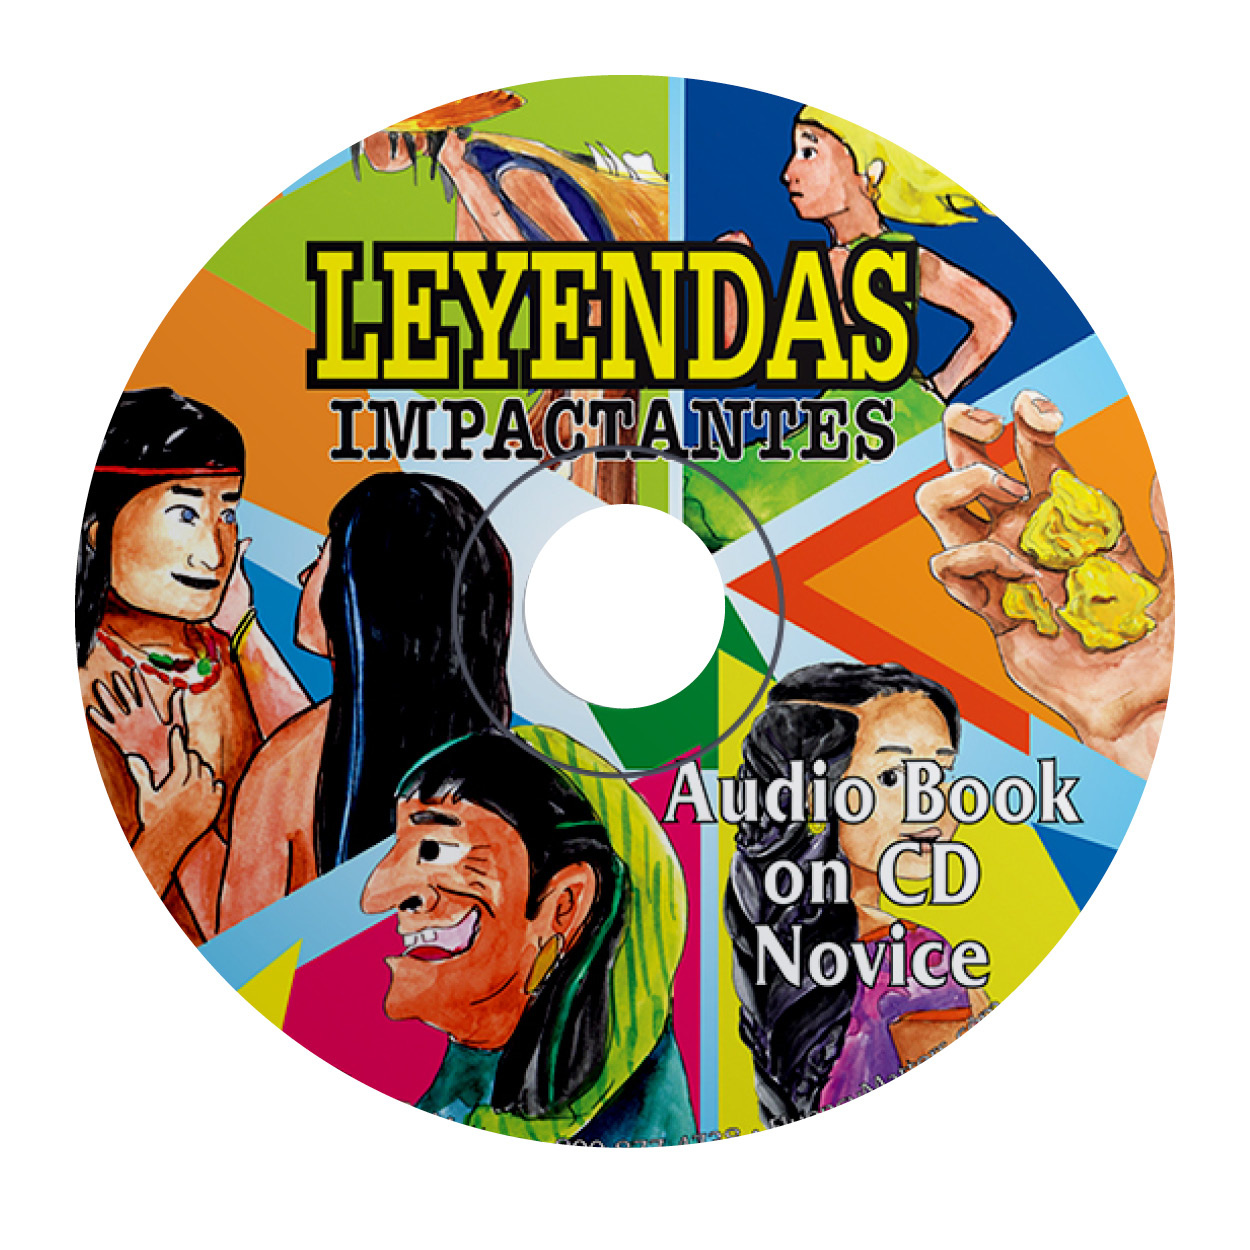 Leyendas impactantes - Audiobook